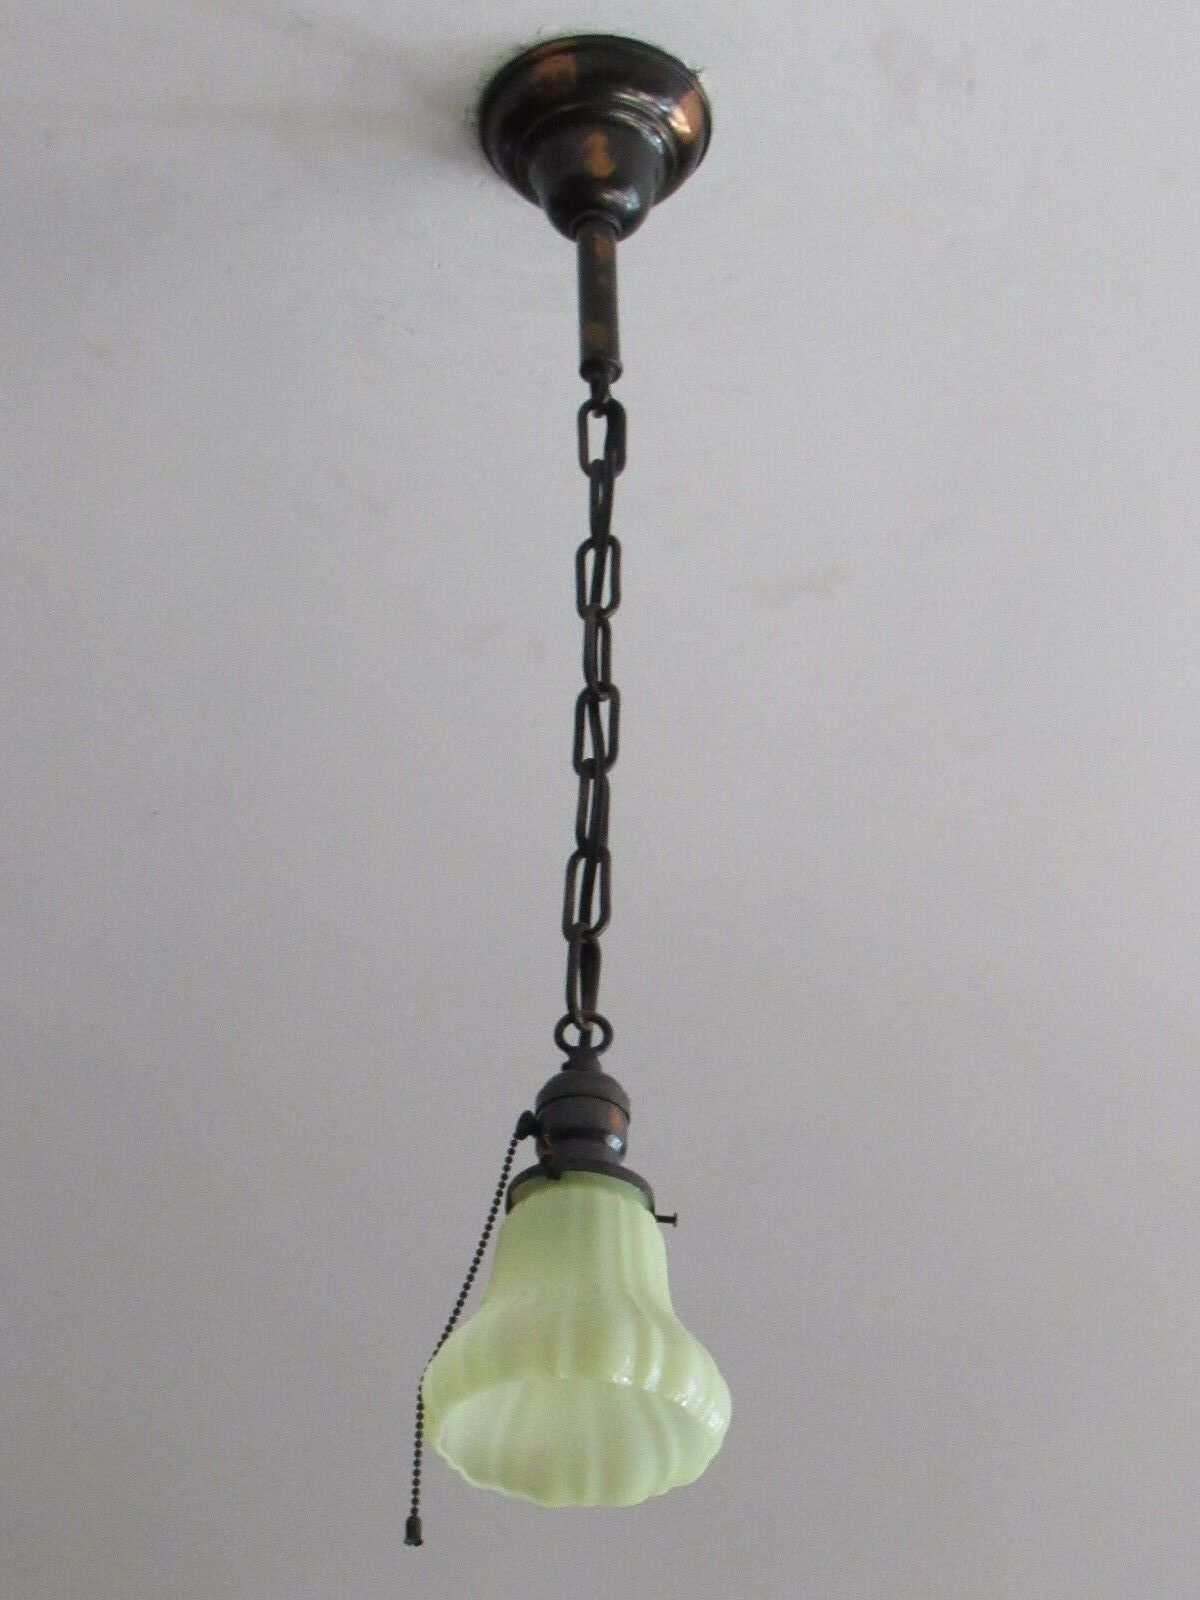 Gorgeous Antique Japanned Light Fixture with Vaseline Shade Completely Restored!